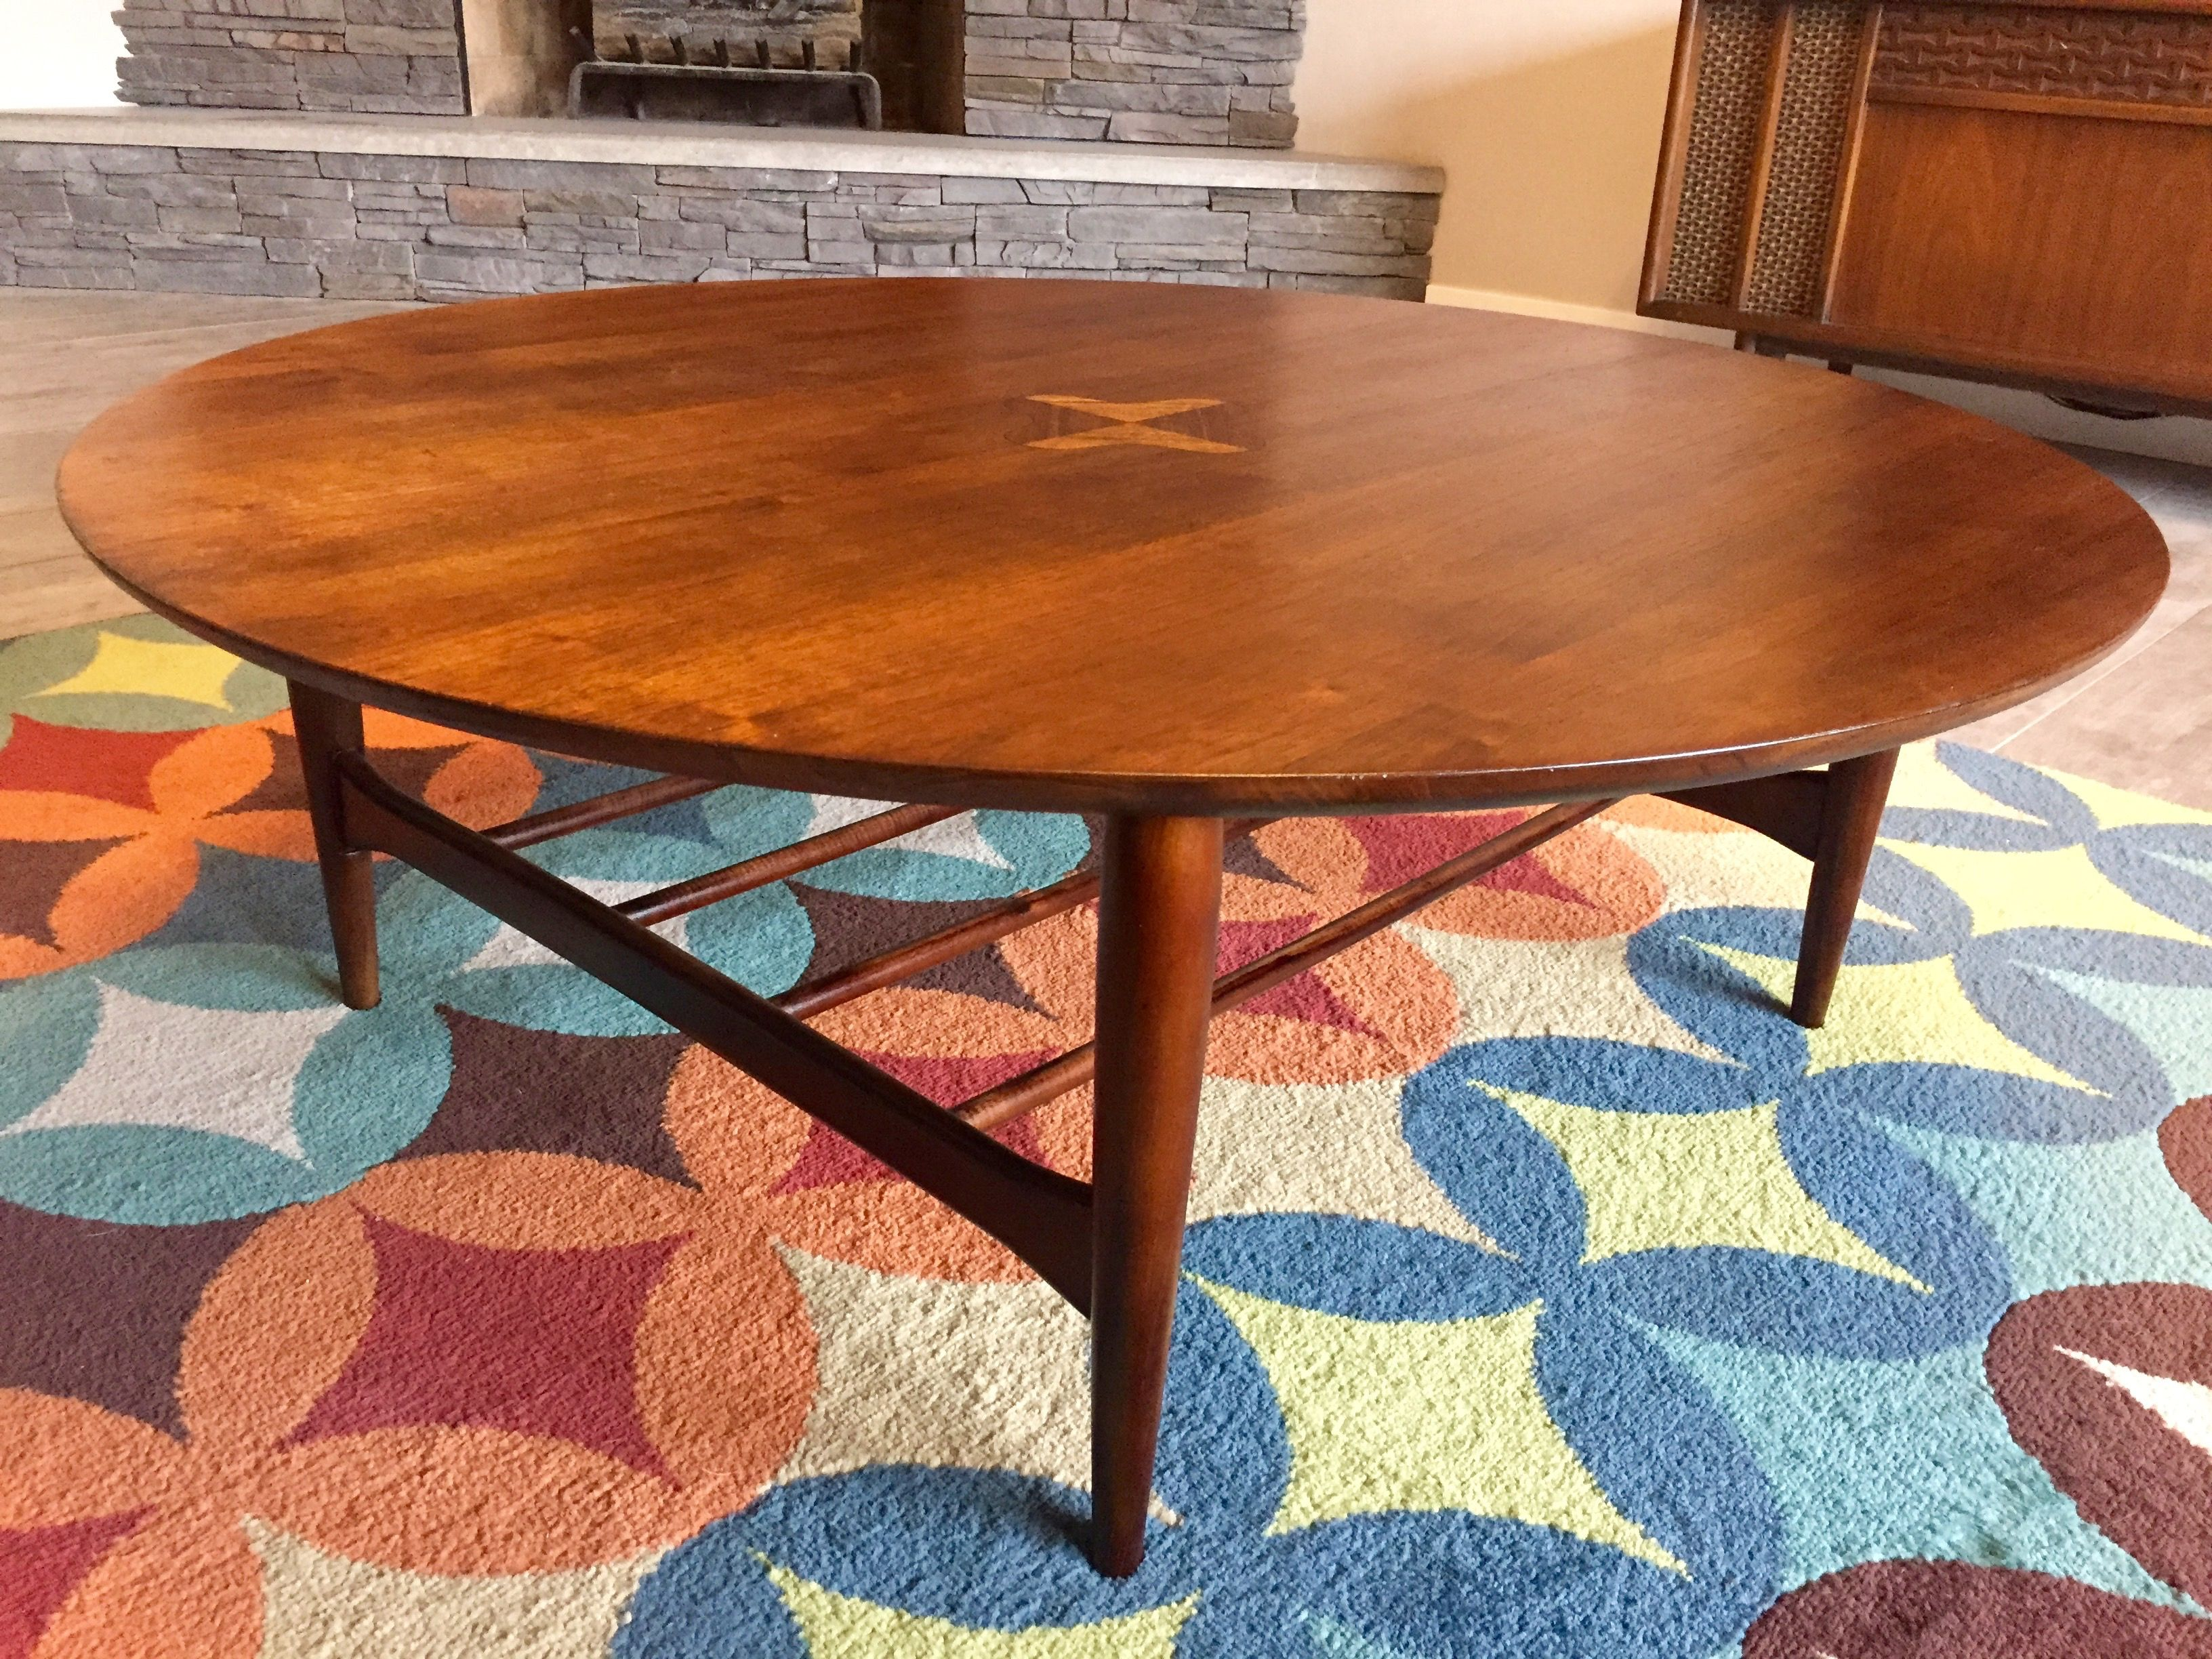 Bassett Artisan Mid Century Modern Round Coffee Table MCM by